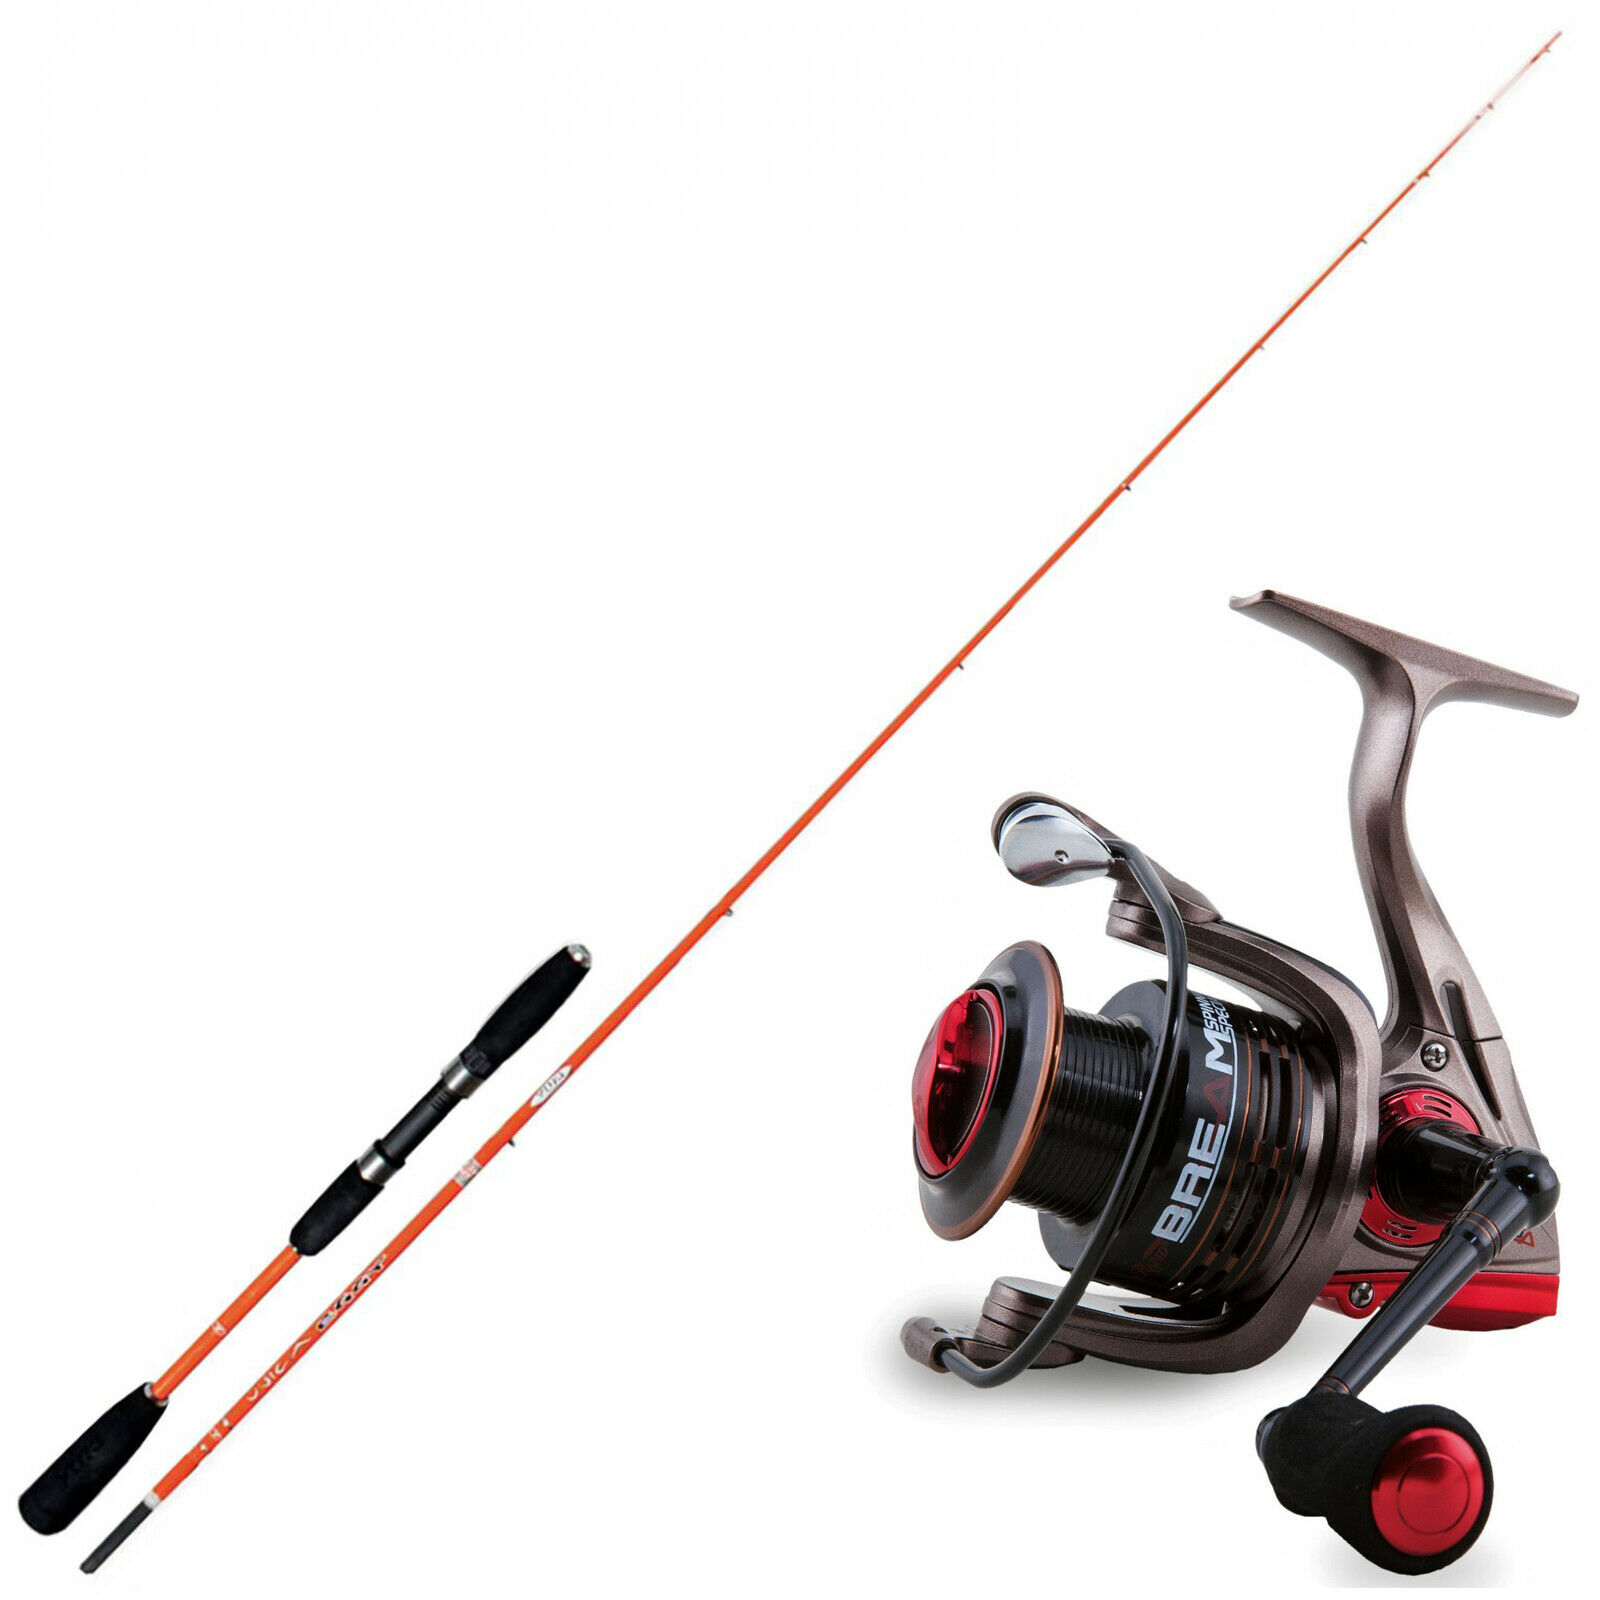 KP3701 Kit Pesca Eging Canna Eggy Unica 180 + Mulinello Rapid Bream 3000 RNG